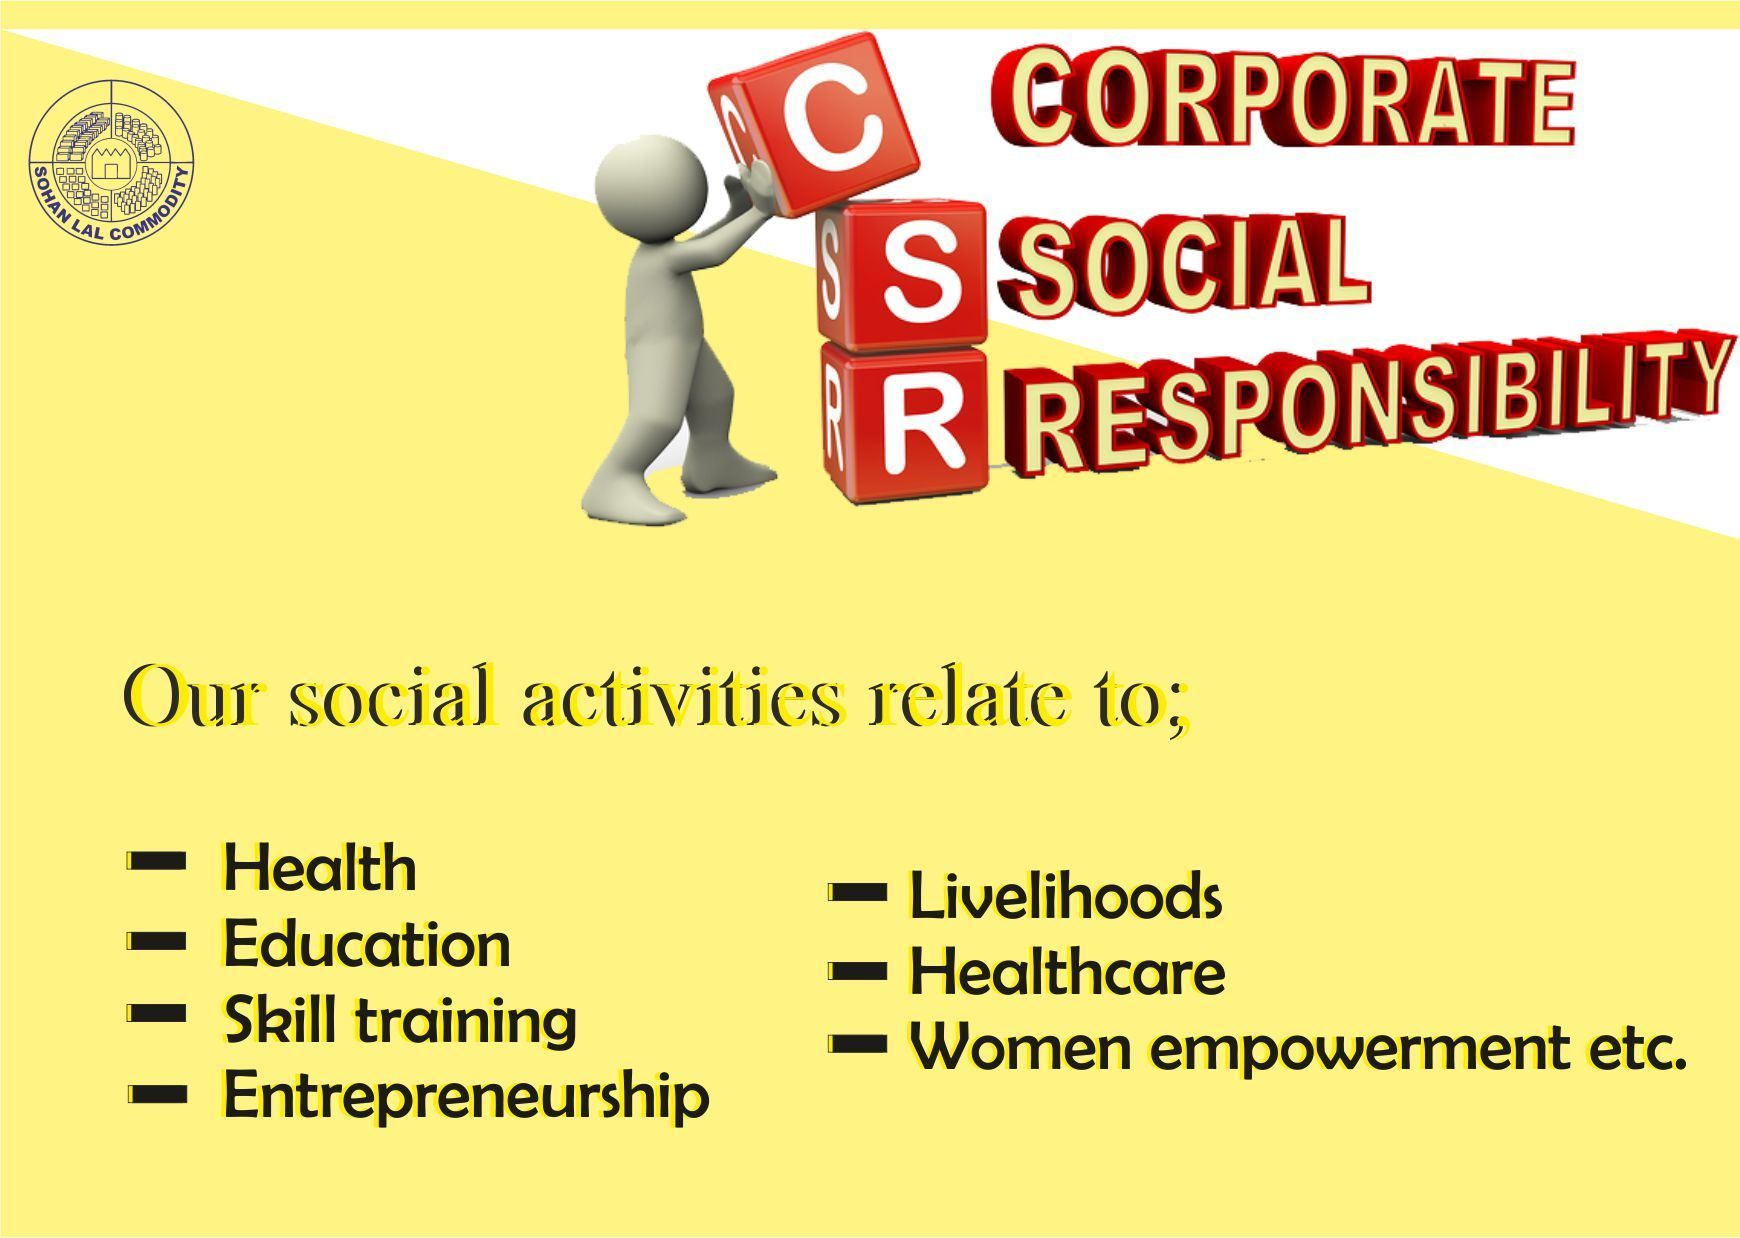 The group's CSR programs aim is to work towards empowering